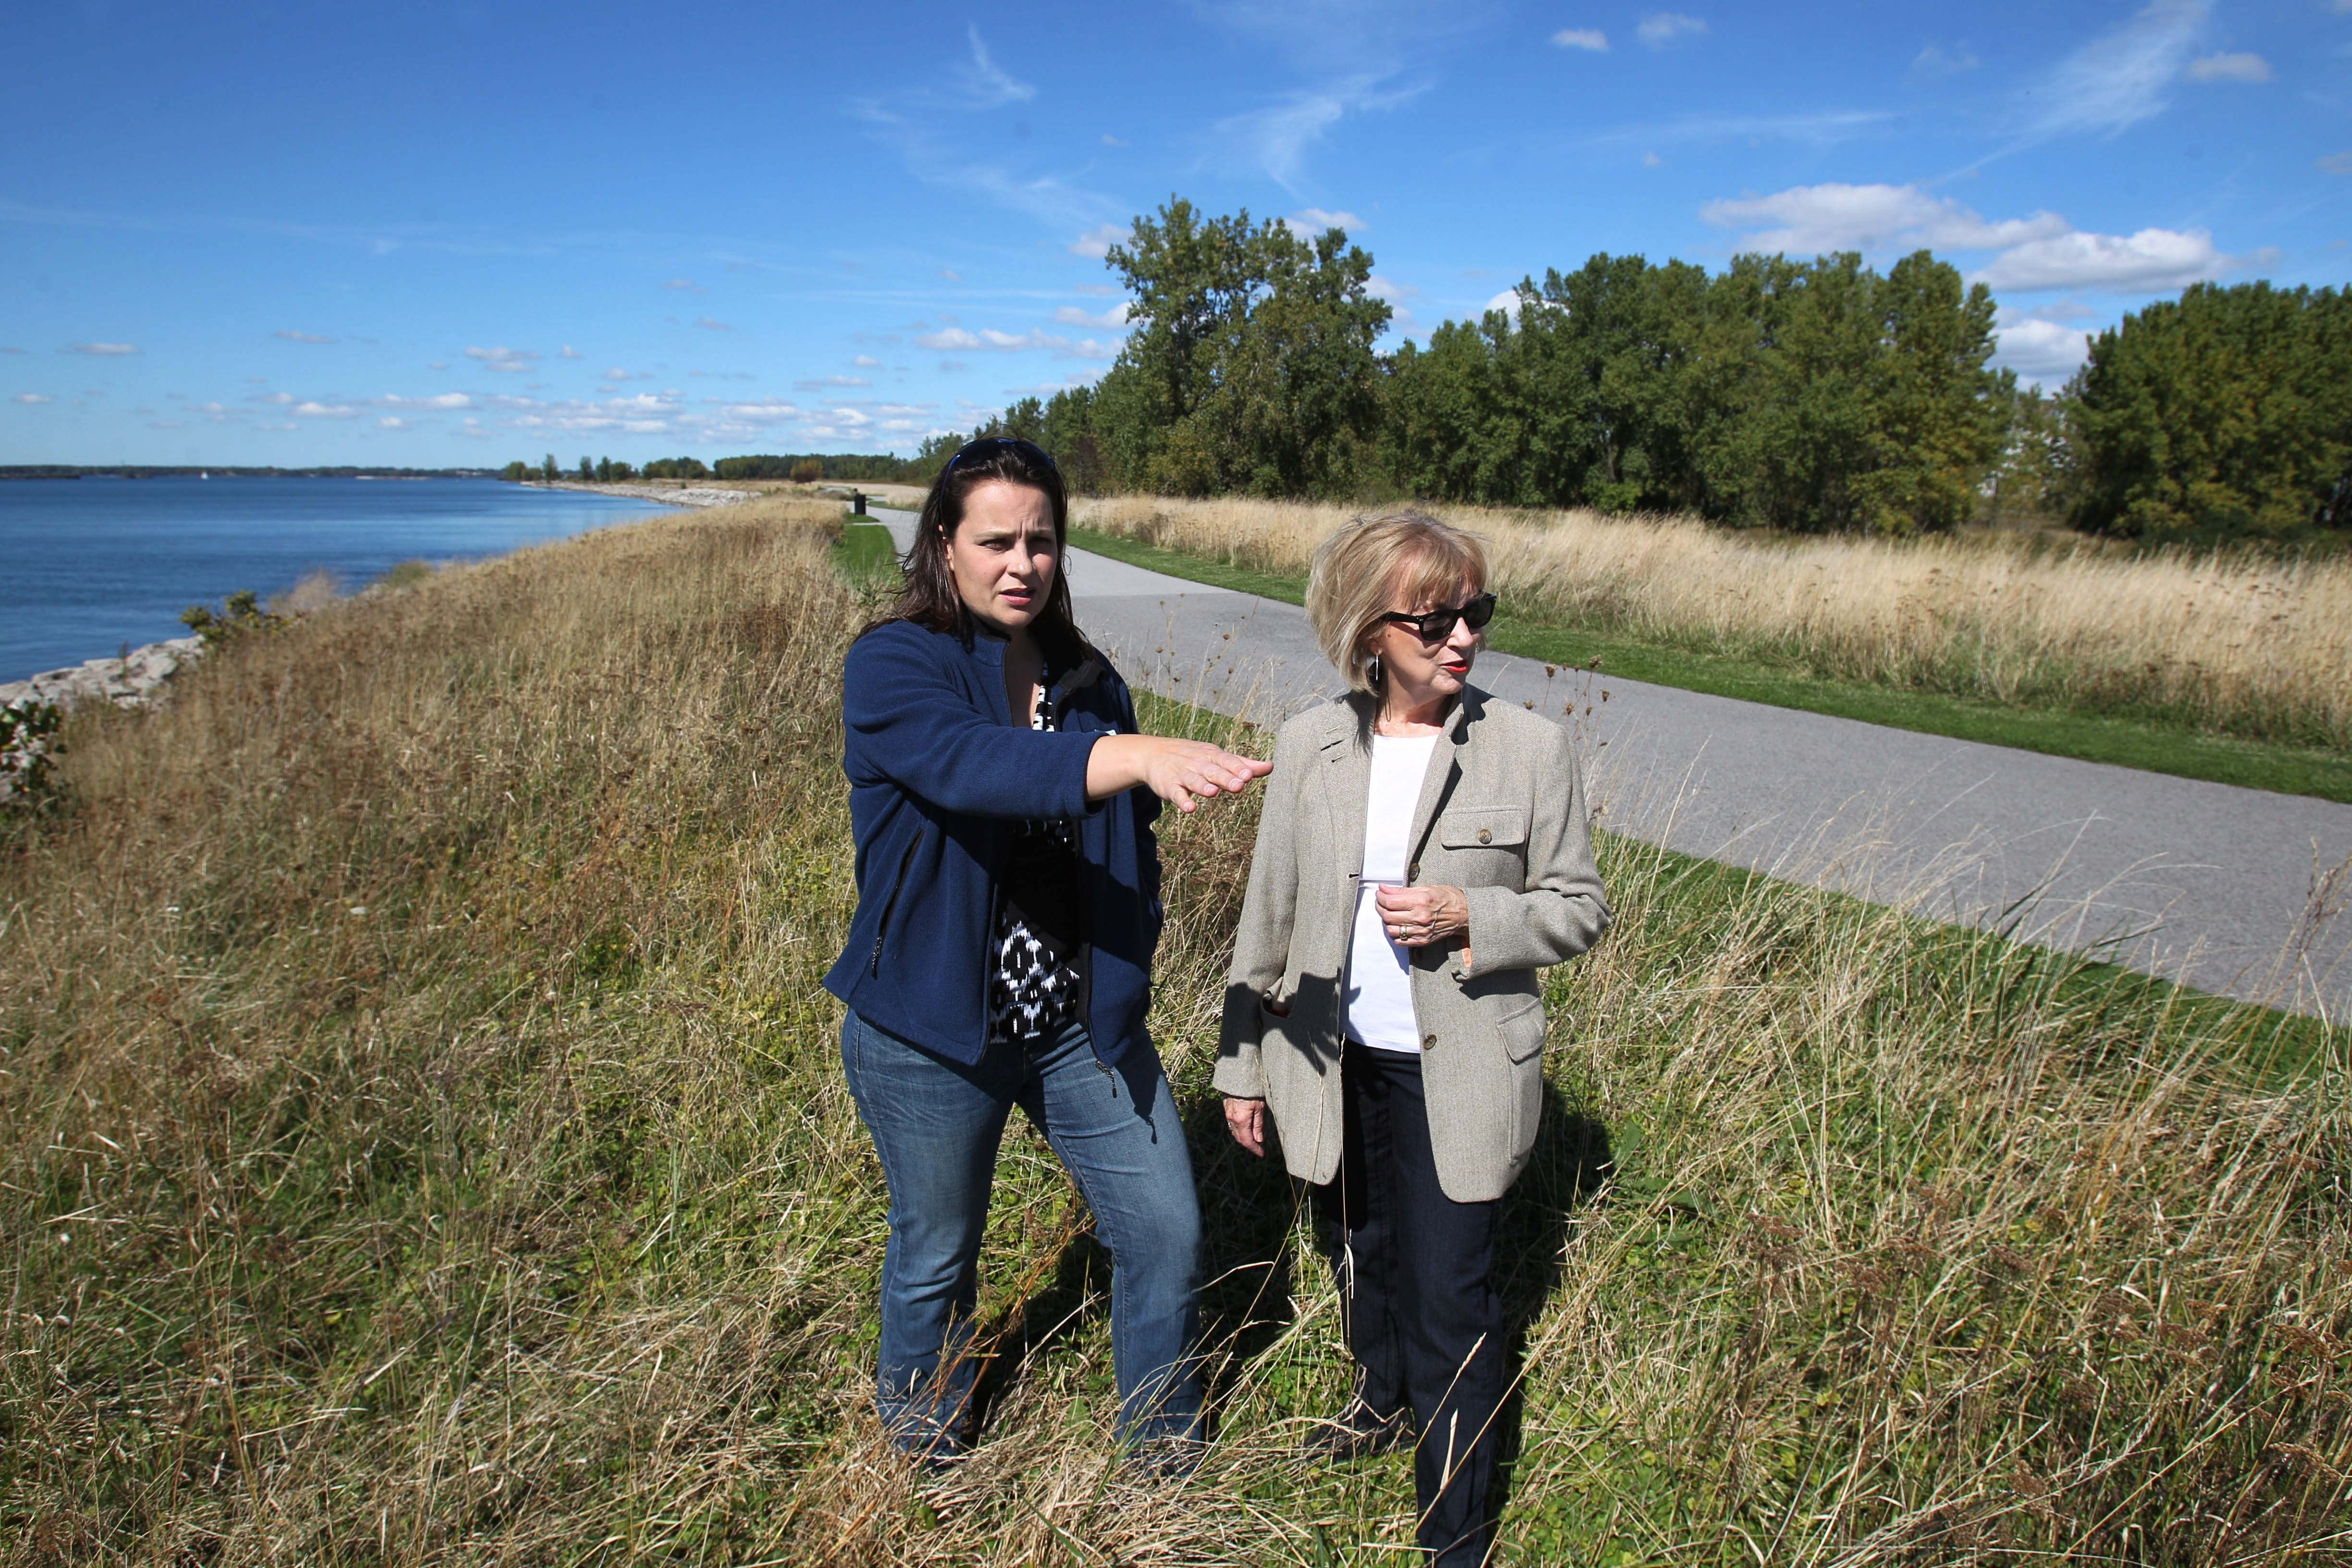 Jill Jedlicka, executive director of Buffalo Niagara Riverkeeper, left, and Joanne Kahn, who chairs the 21st Century Park on the Outer Harbor, walk along the piece of outer harbor land adjacent to the Bell Slip. The two groups are promoting a large park in this area for hiking, walking and water activities.  Sharon Cantillon/Buffalo News file photo